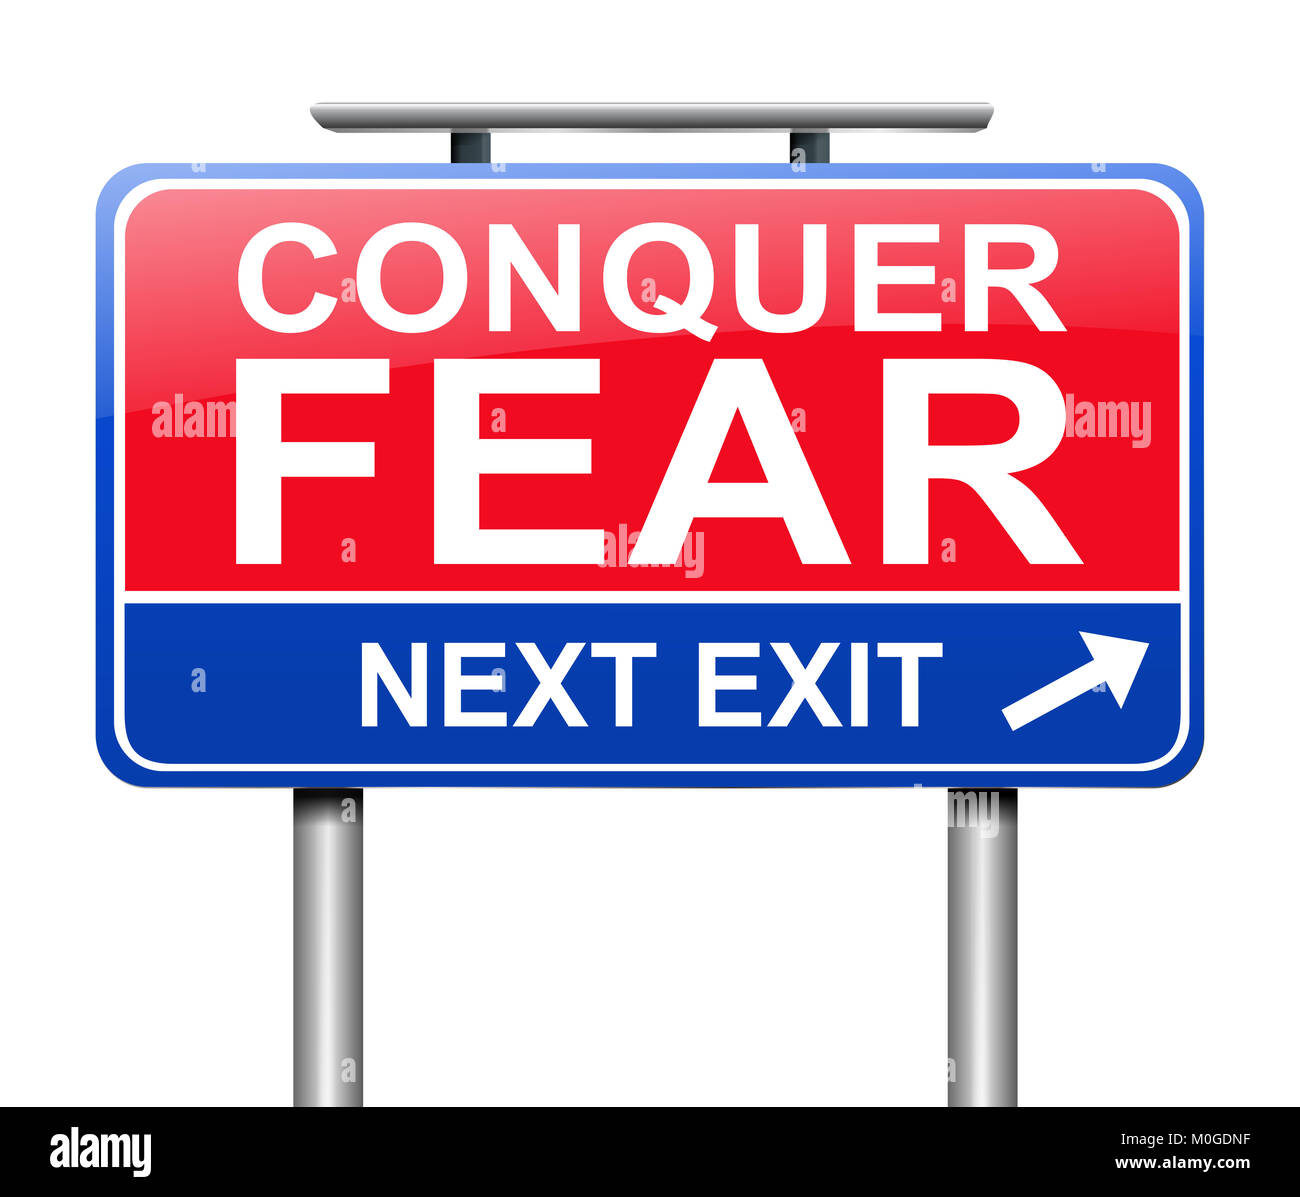 3d Illustration depicting a sign with a conquer fear concept. - Stock Image